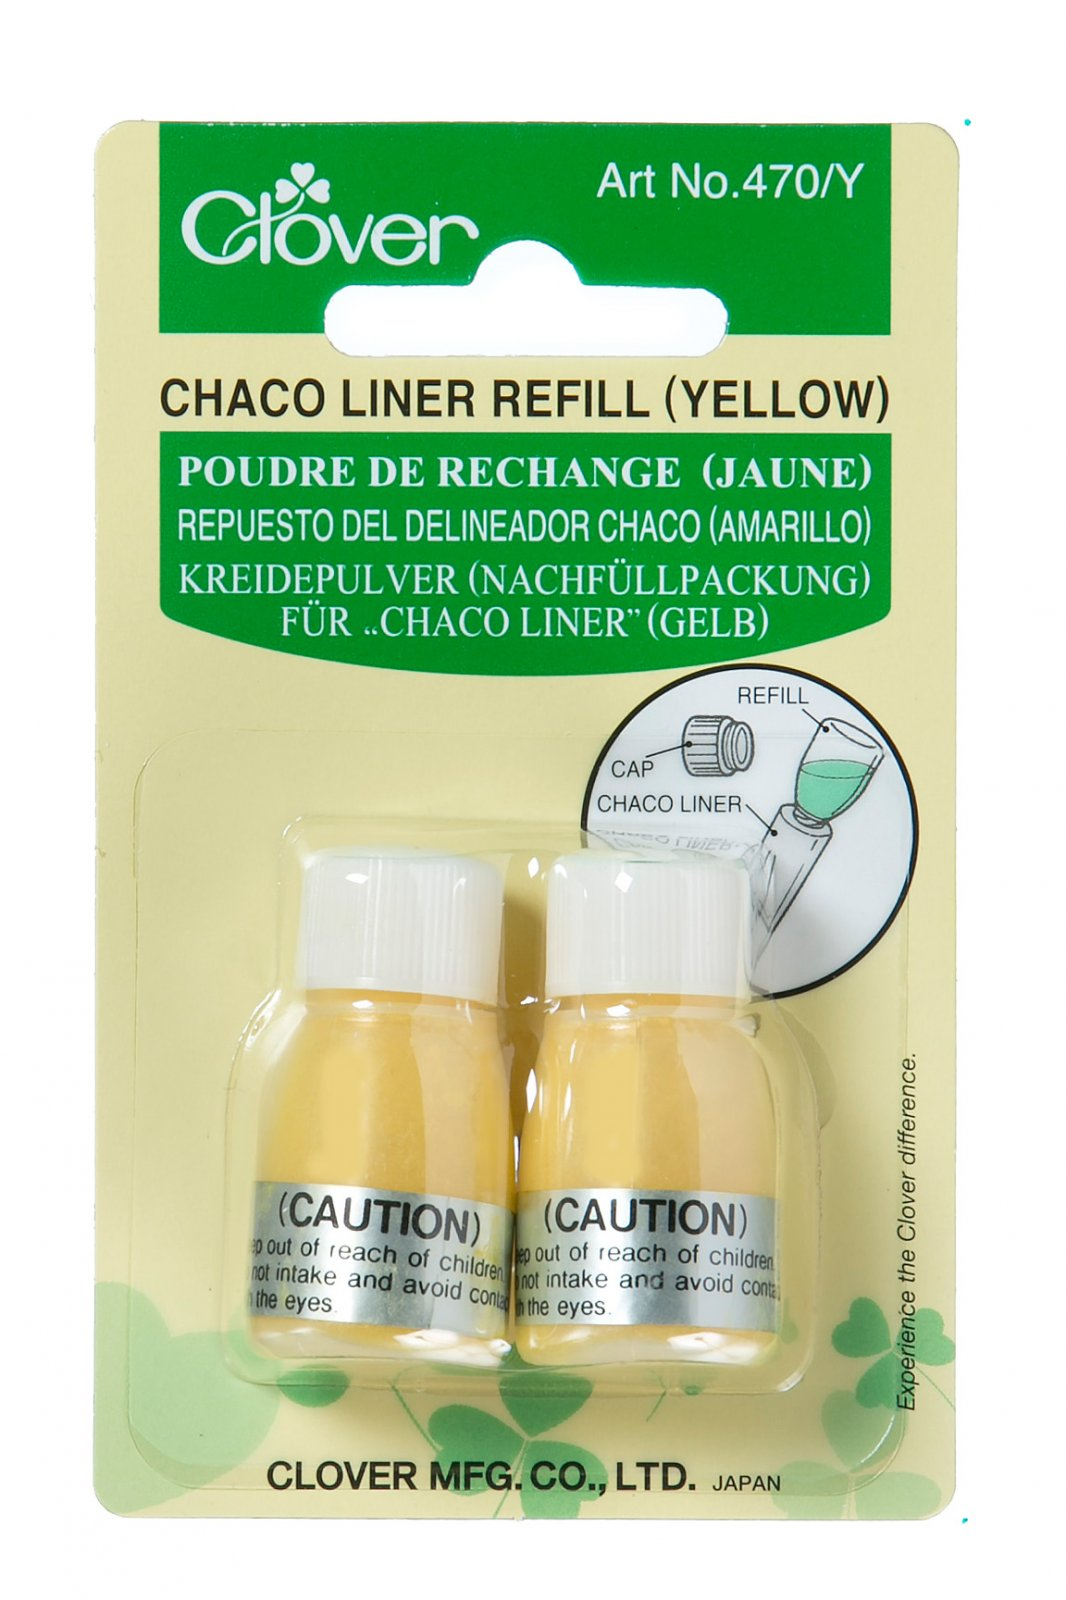 Clover - 470/Y Chaco Liner Refill (Yellow)